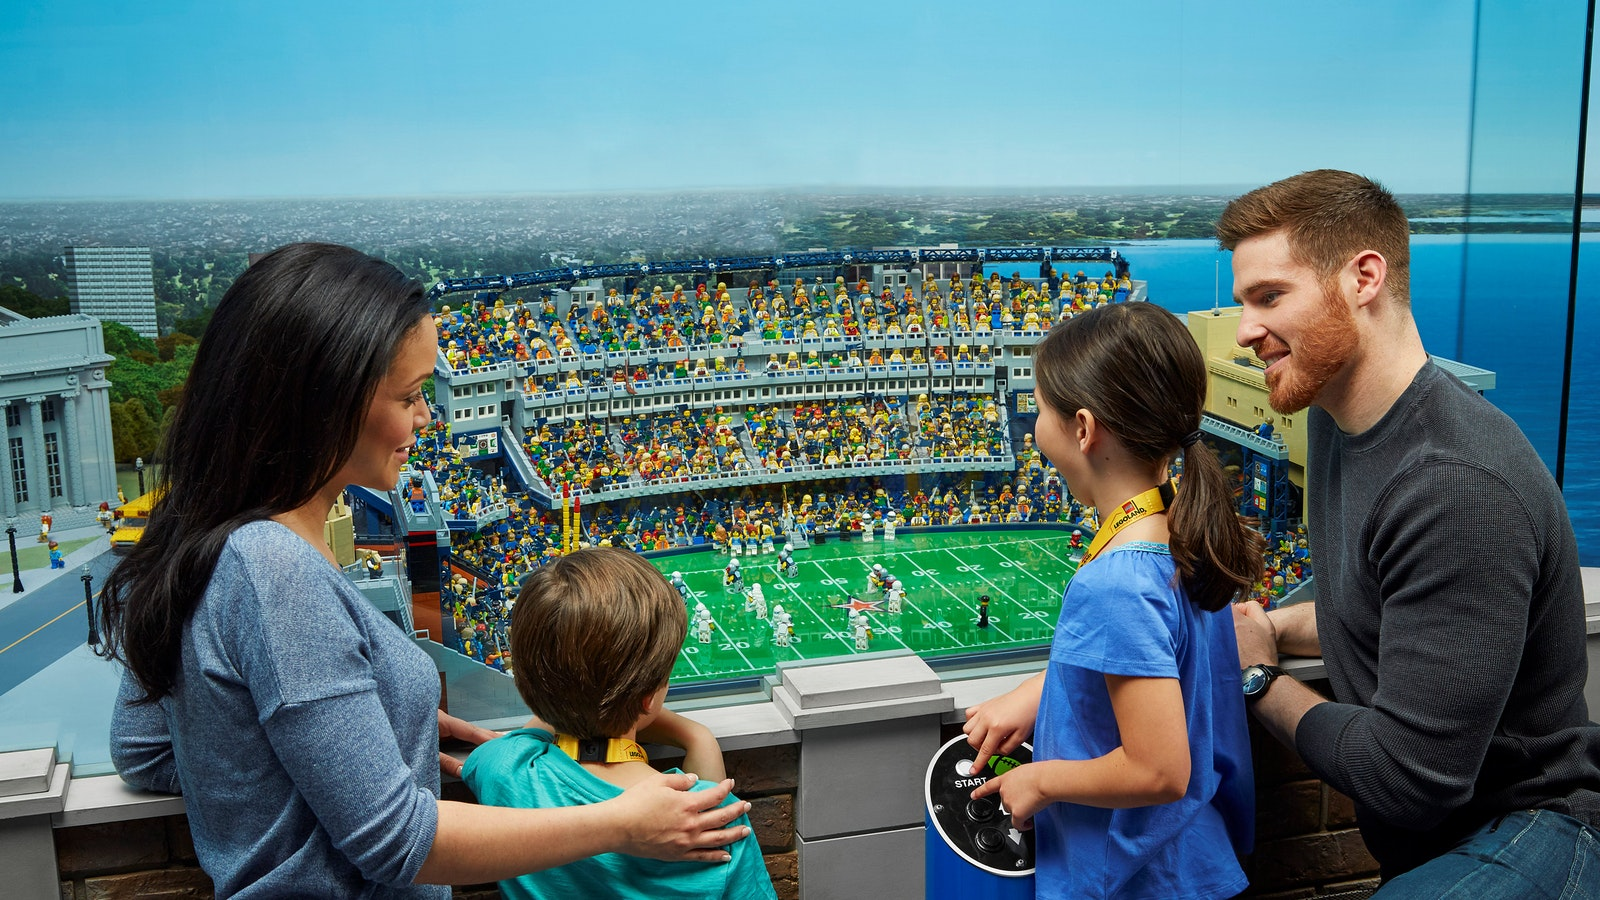 Sneak a peek at the spectacular MINILAND. It's built from A LOT of bricks: over 1.5 million!